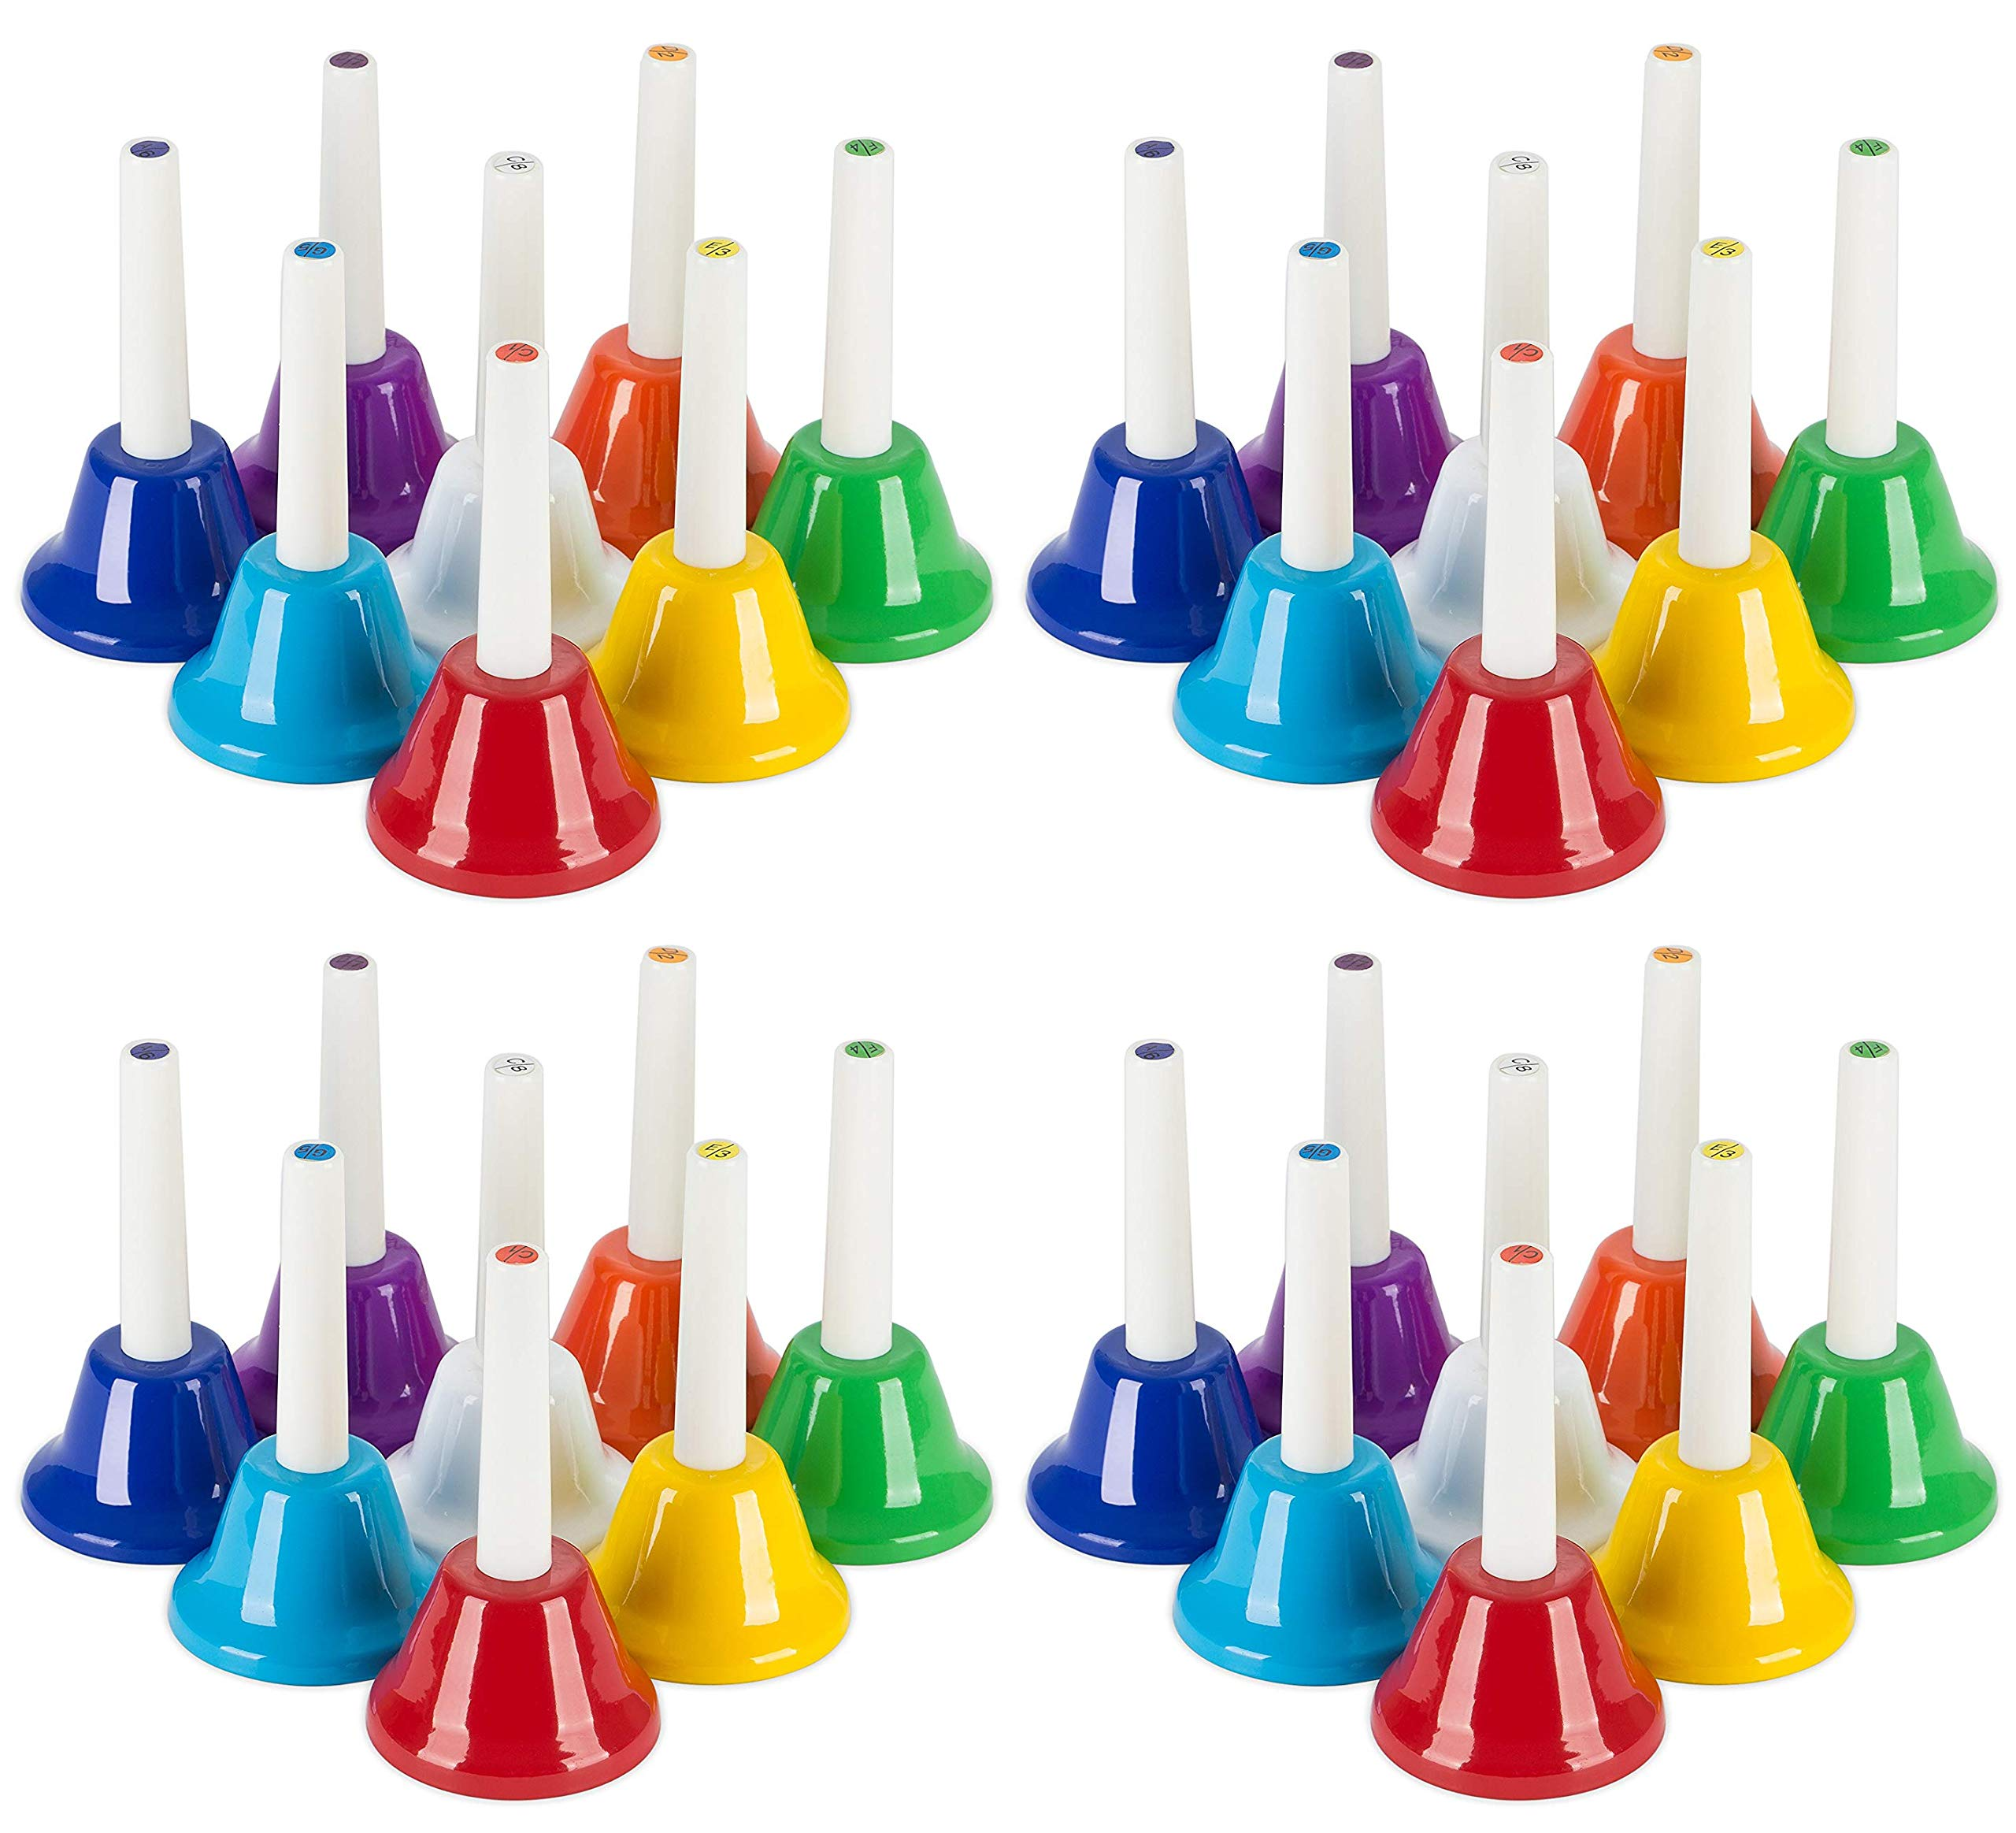 Jade Active Premium Handbell Set - 4 PCS - Musical Bells for Children - Musical Learning at an Early Age